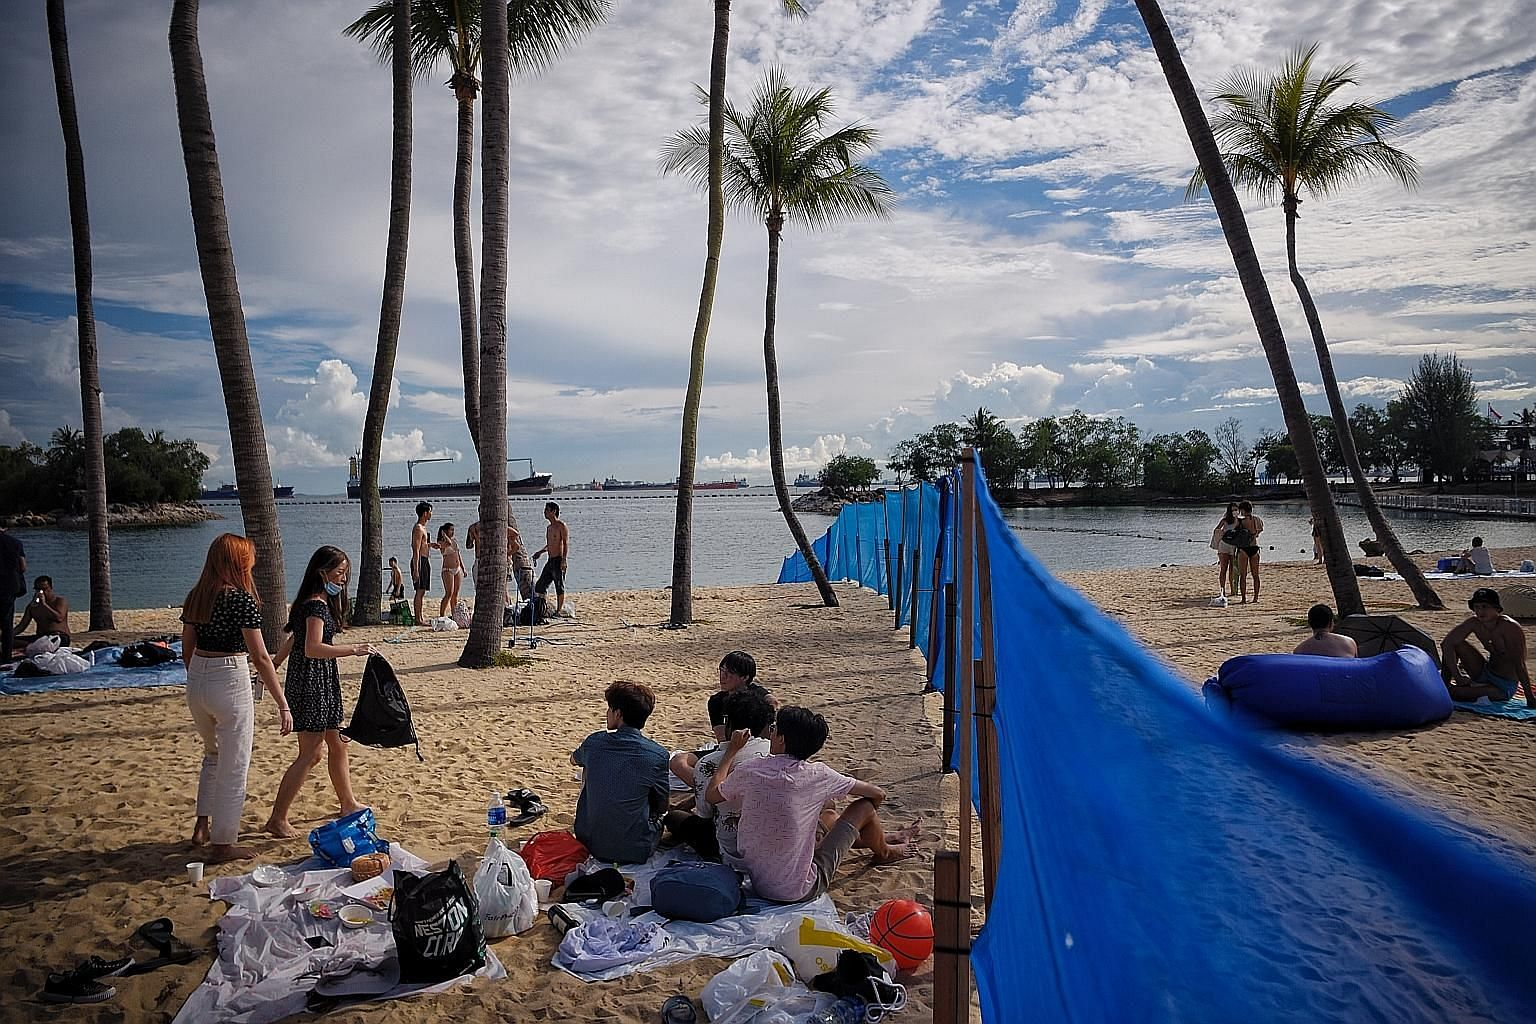 Visitors at Siloso Beach yesterday. The booking system will be trialled for an initial period of three months for Tanjong, Palawan and Siloso beaches. Since July, the three beaches have been segmented into a total of seven zones, each with a capacity